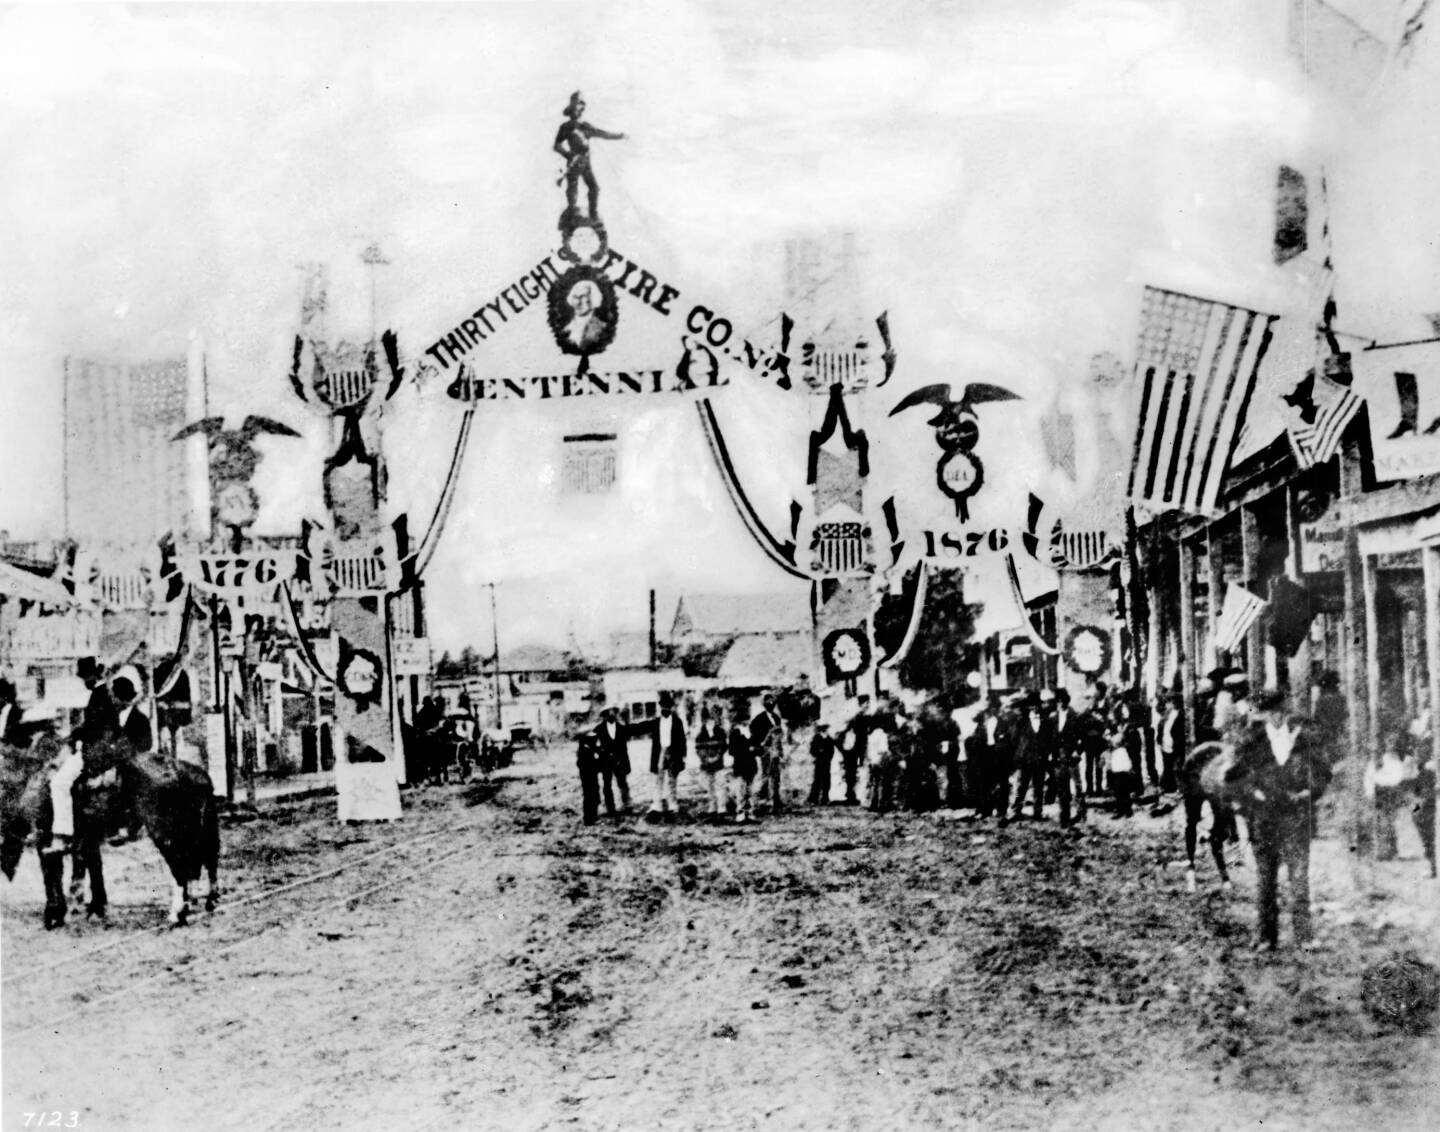 Fourth of July parade down Los Angeles' Main Street, 1876